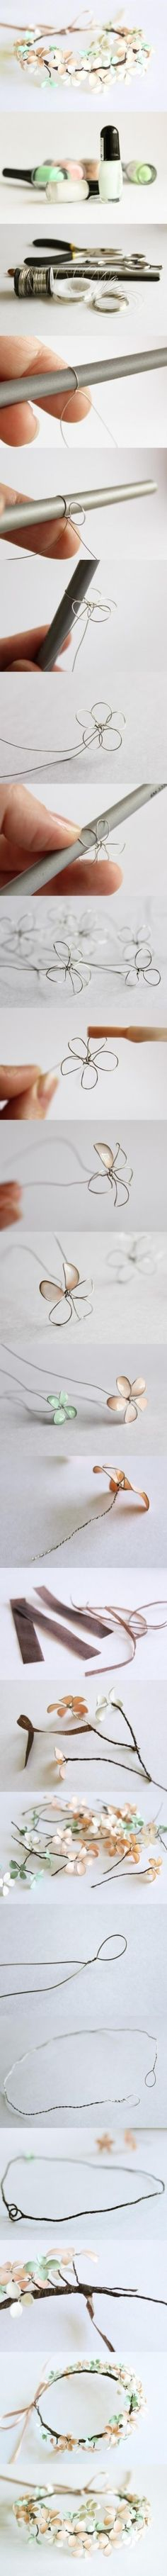 Waaaaaah this diy is awesome! With thin wire and nail polish to do some pretty flowers.